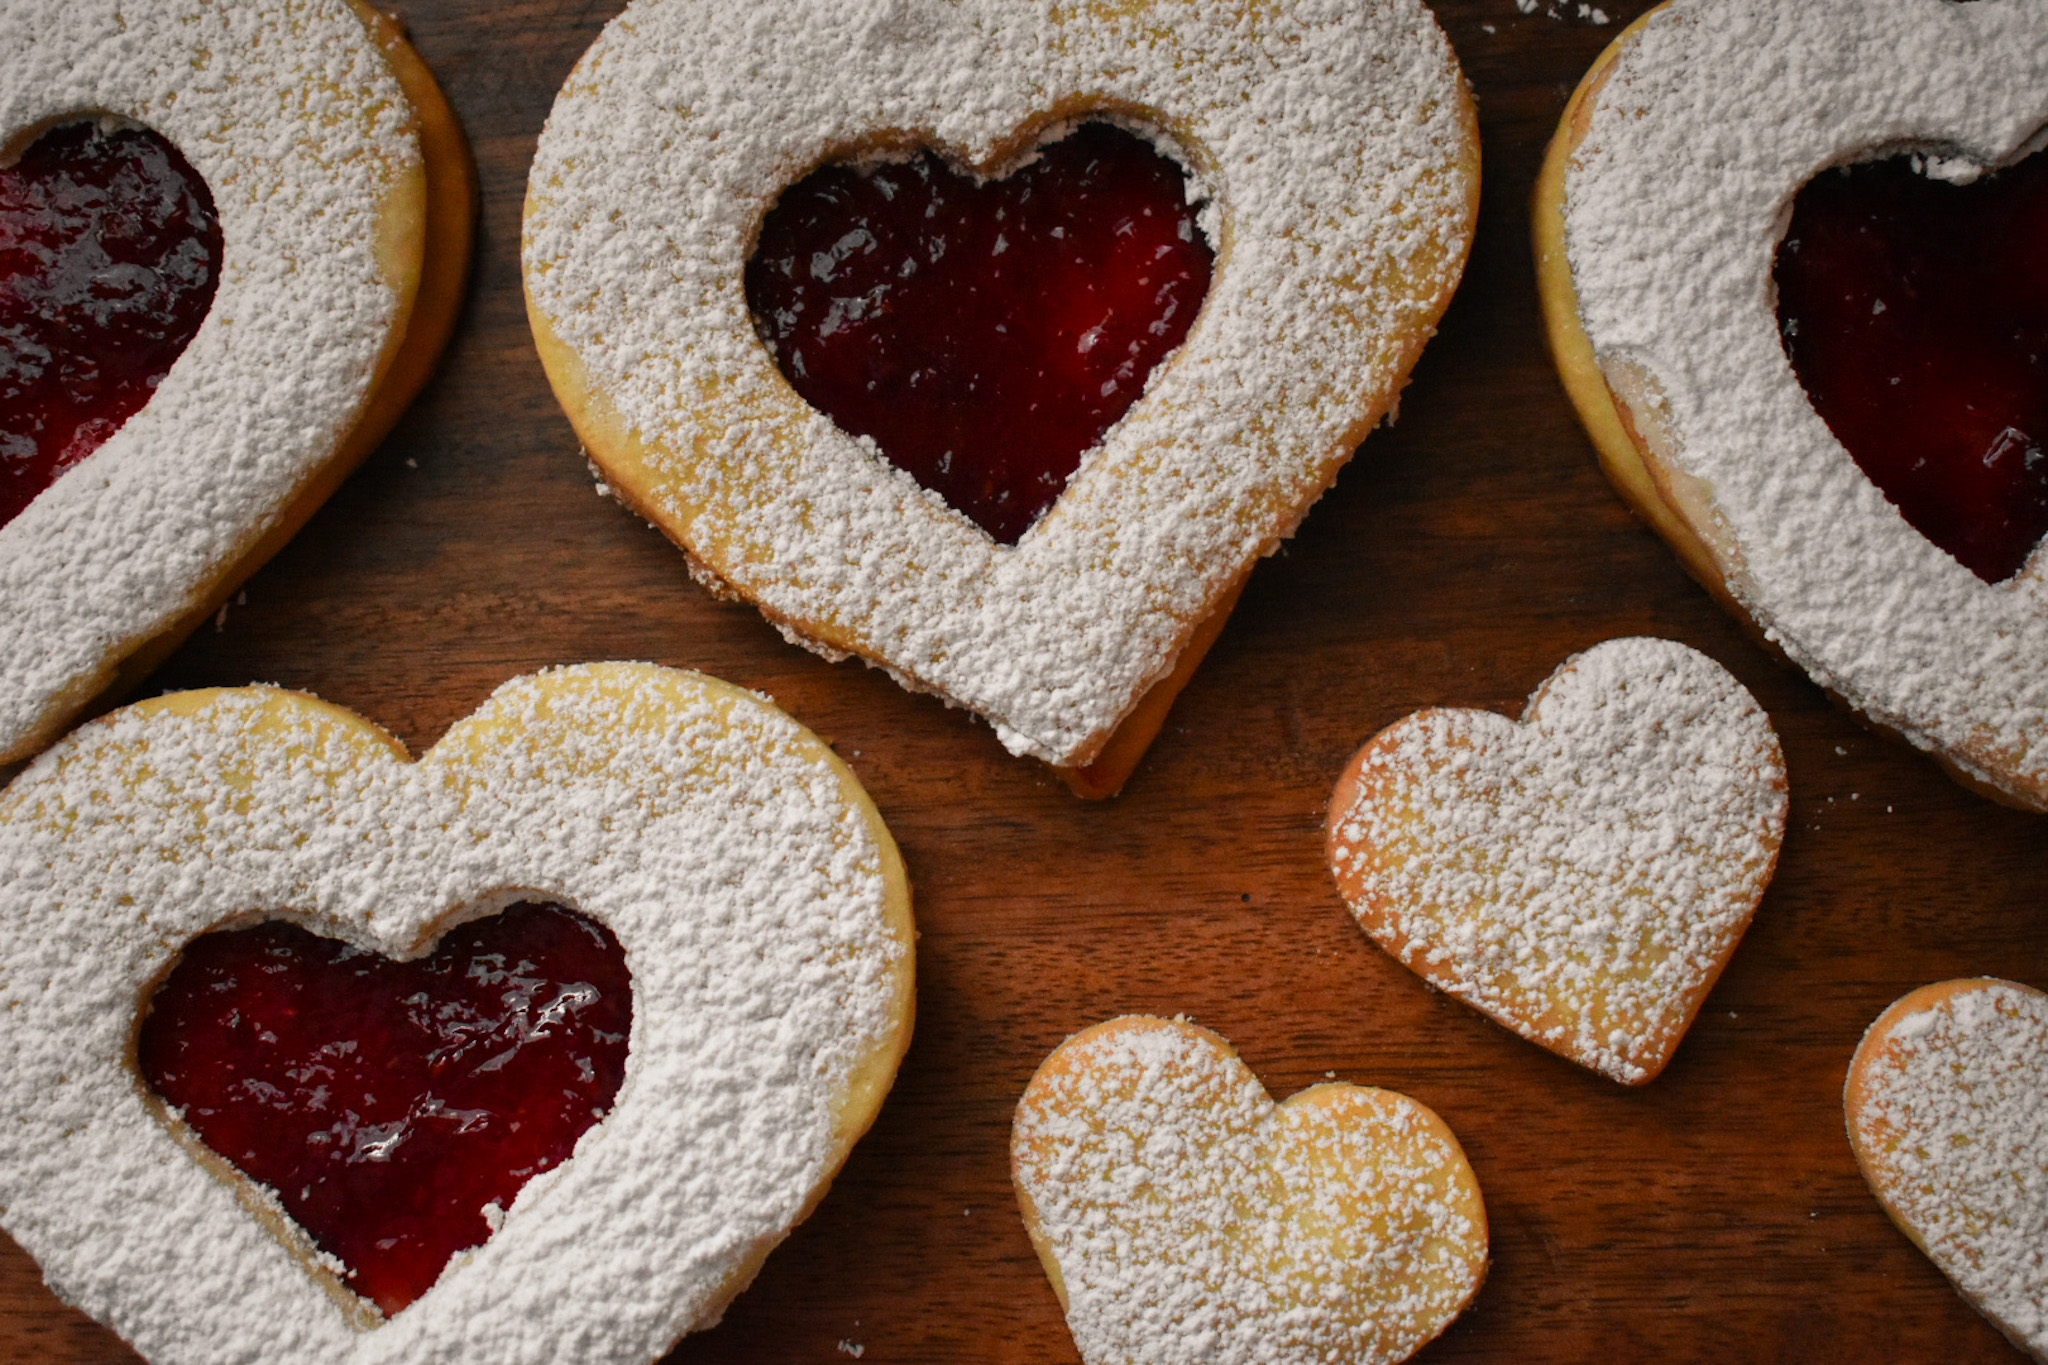 Heart-Shaped Raspberry Shortbread Cookies for Valentine's Day